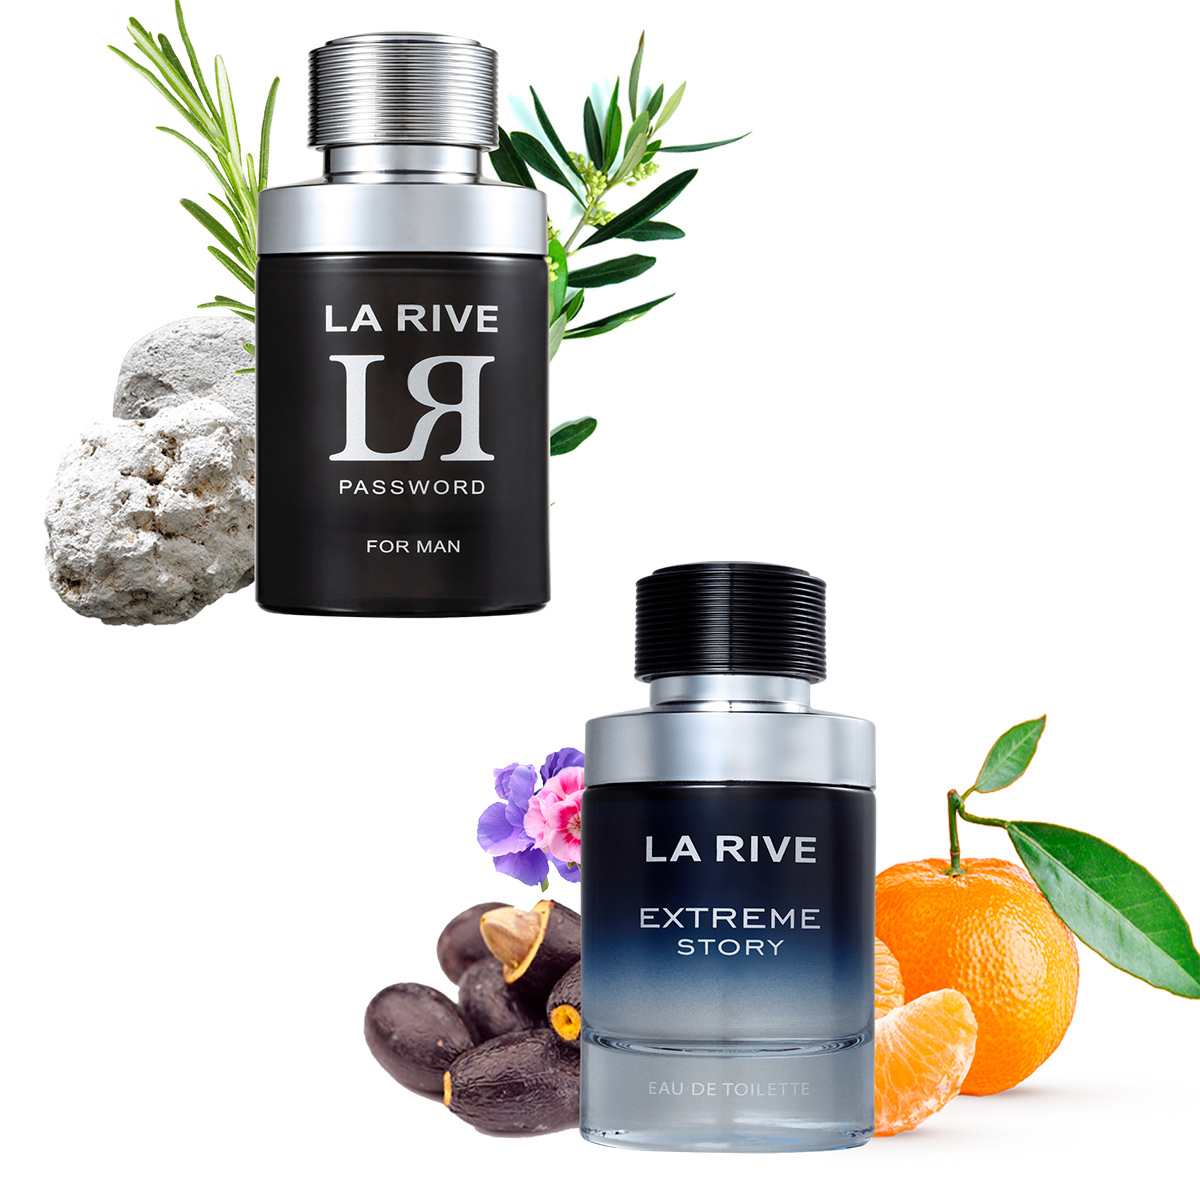 Kit 2 Perfumes La Rive Extreme Story 75ml + LR Password 75ml